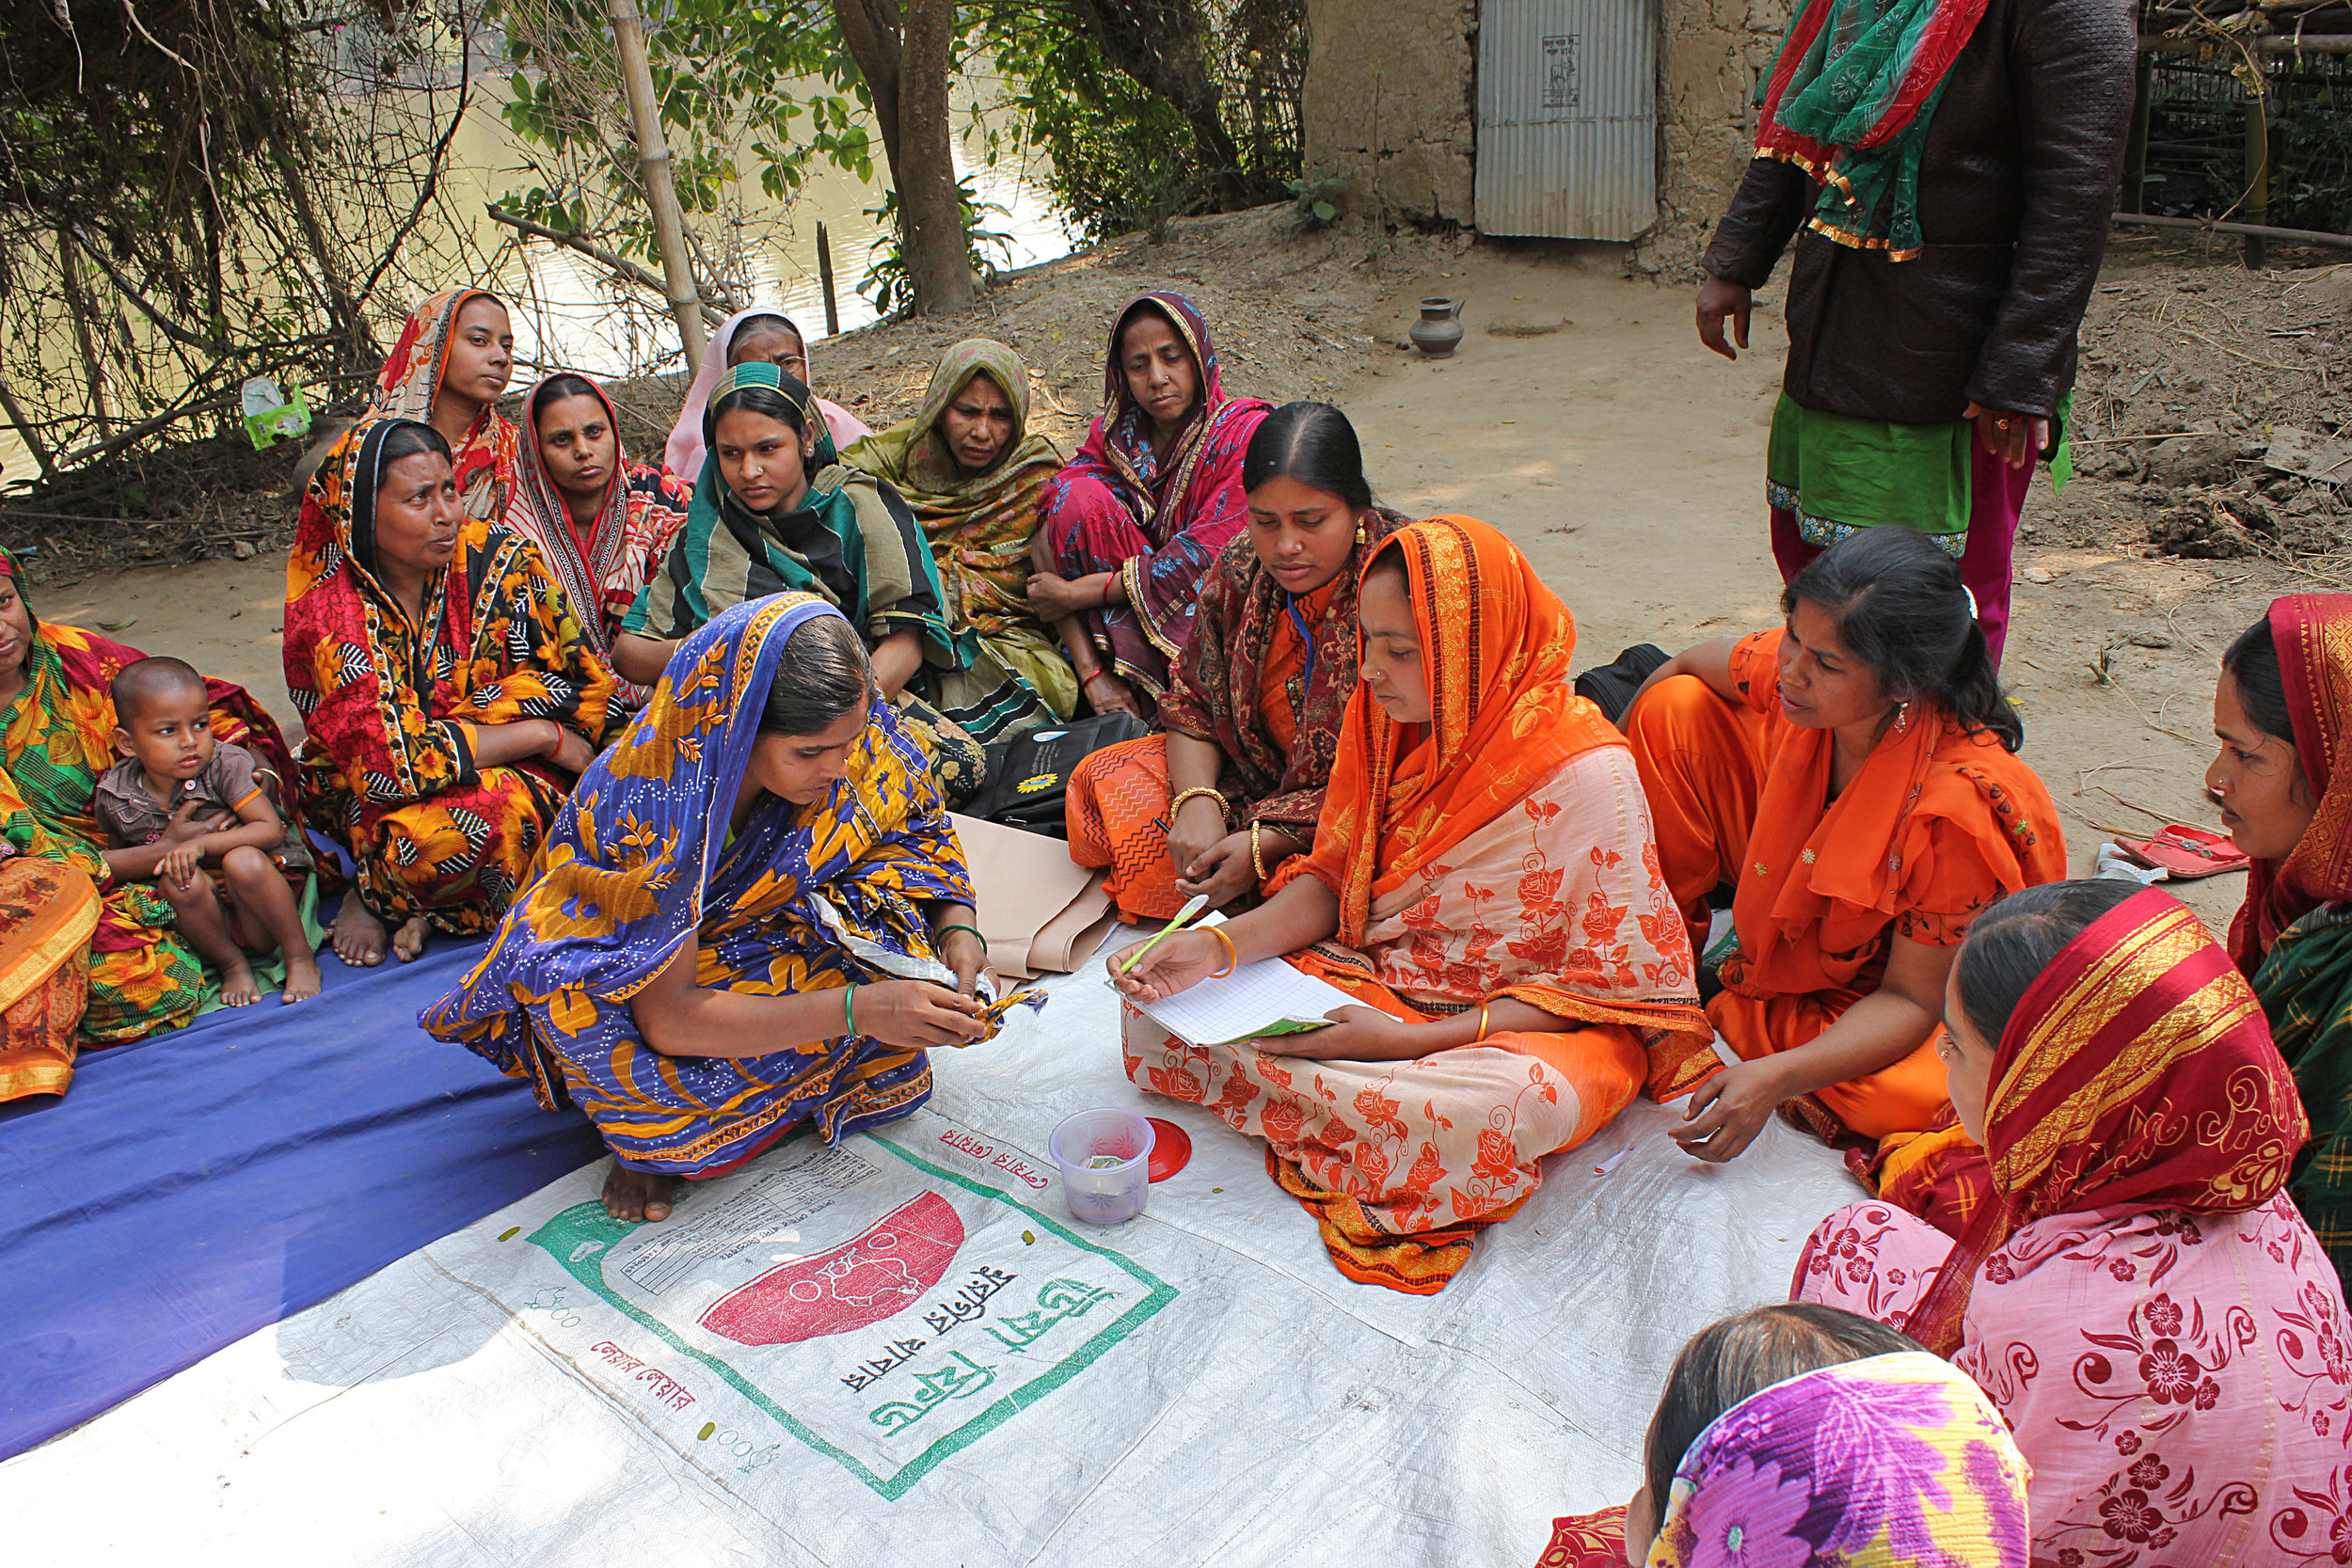 A women's health group meet to discuss new ideas on how to resolve health problems in their community